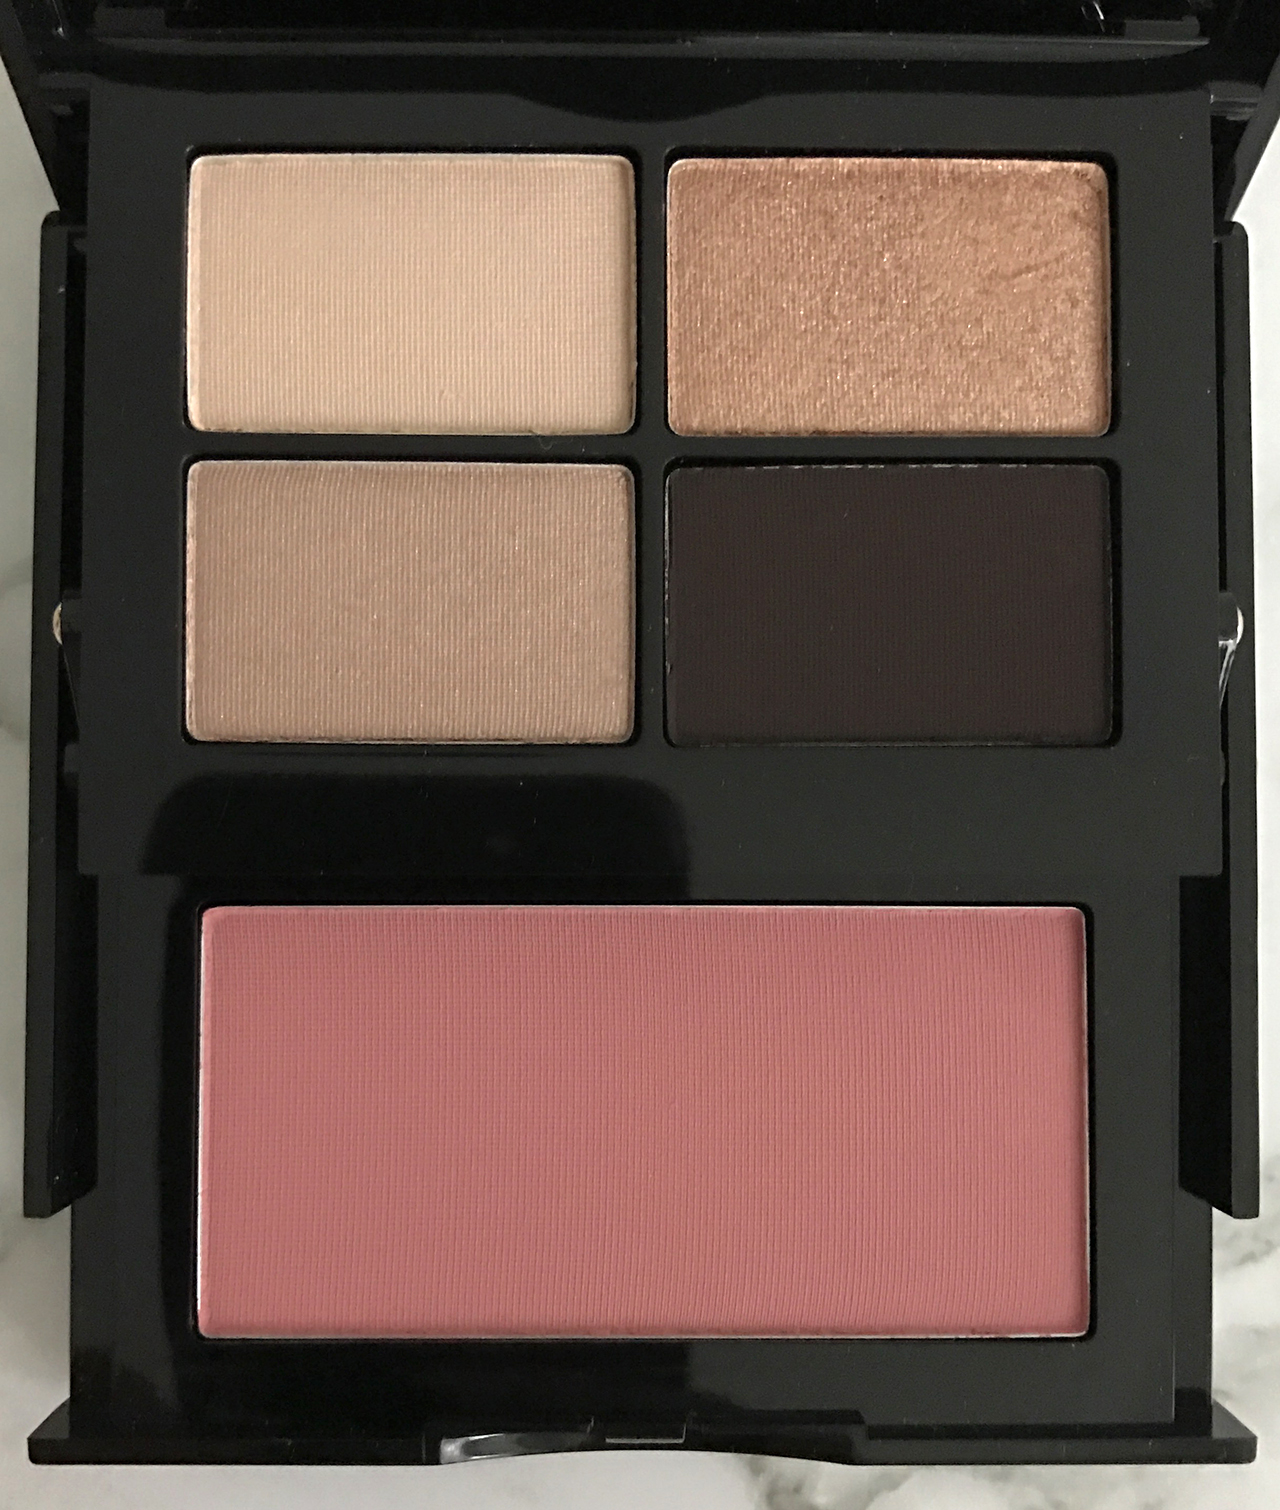 Bobbi Brown Sultry Nude Eye & Cheek Palette for Spring 2017